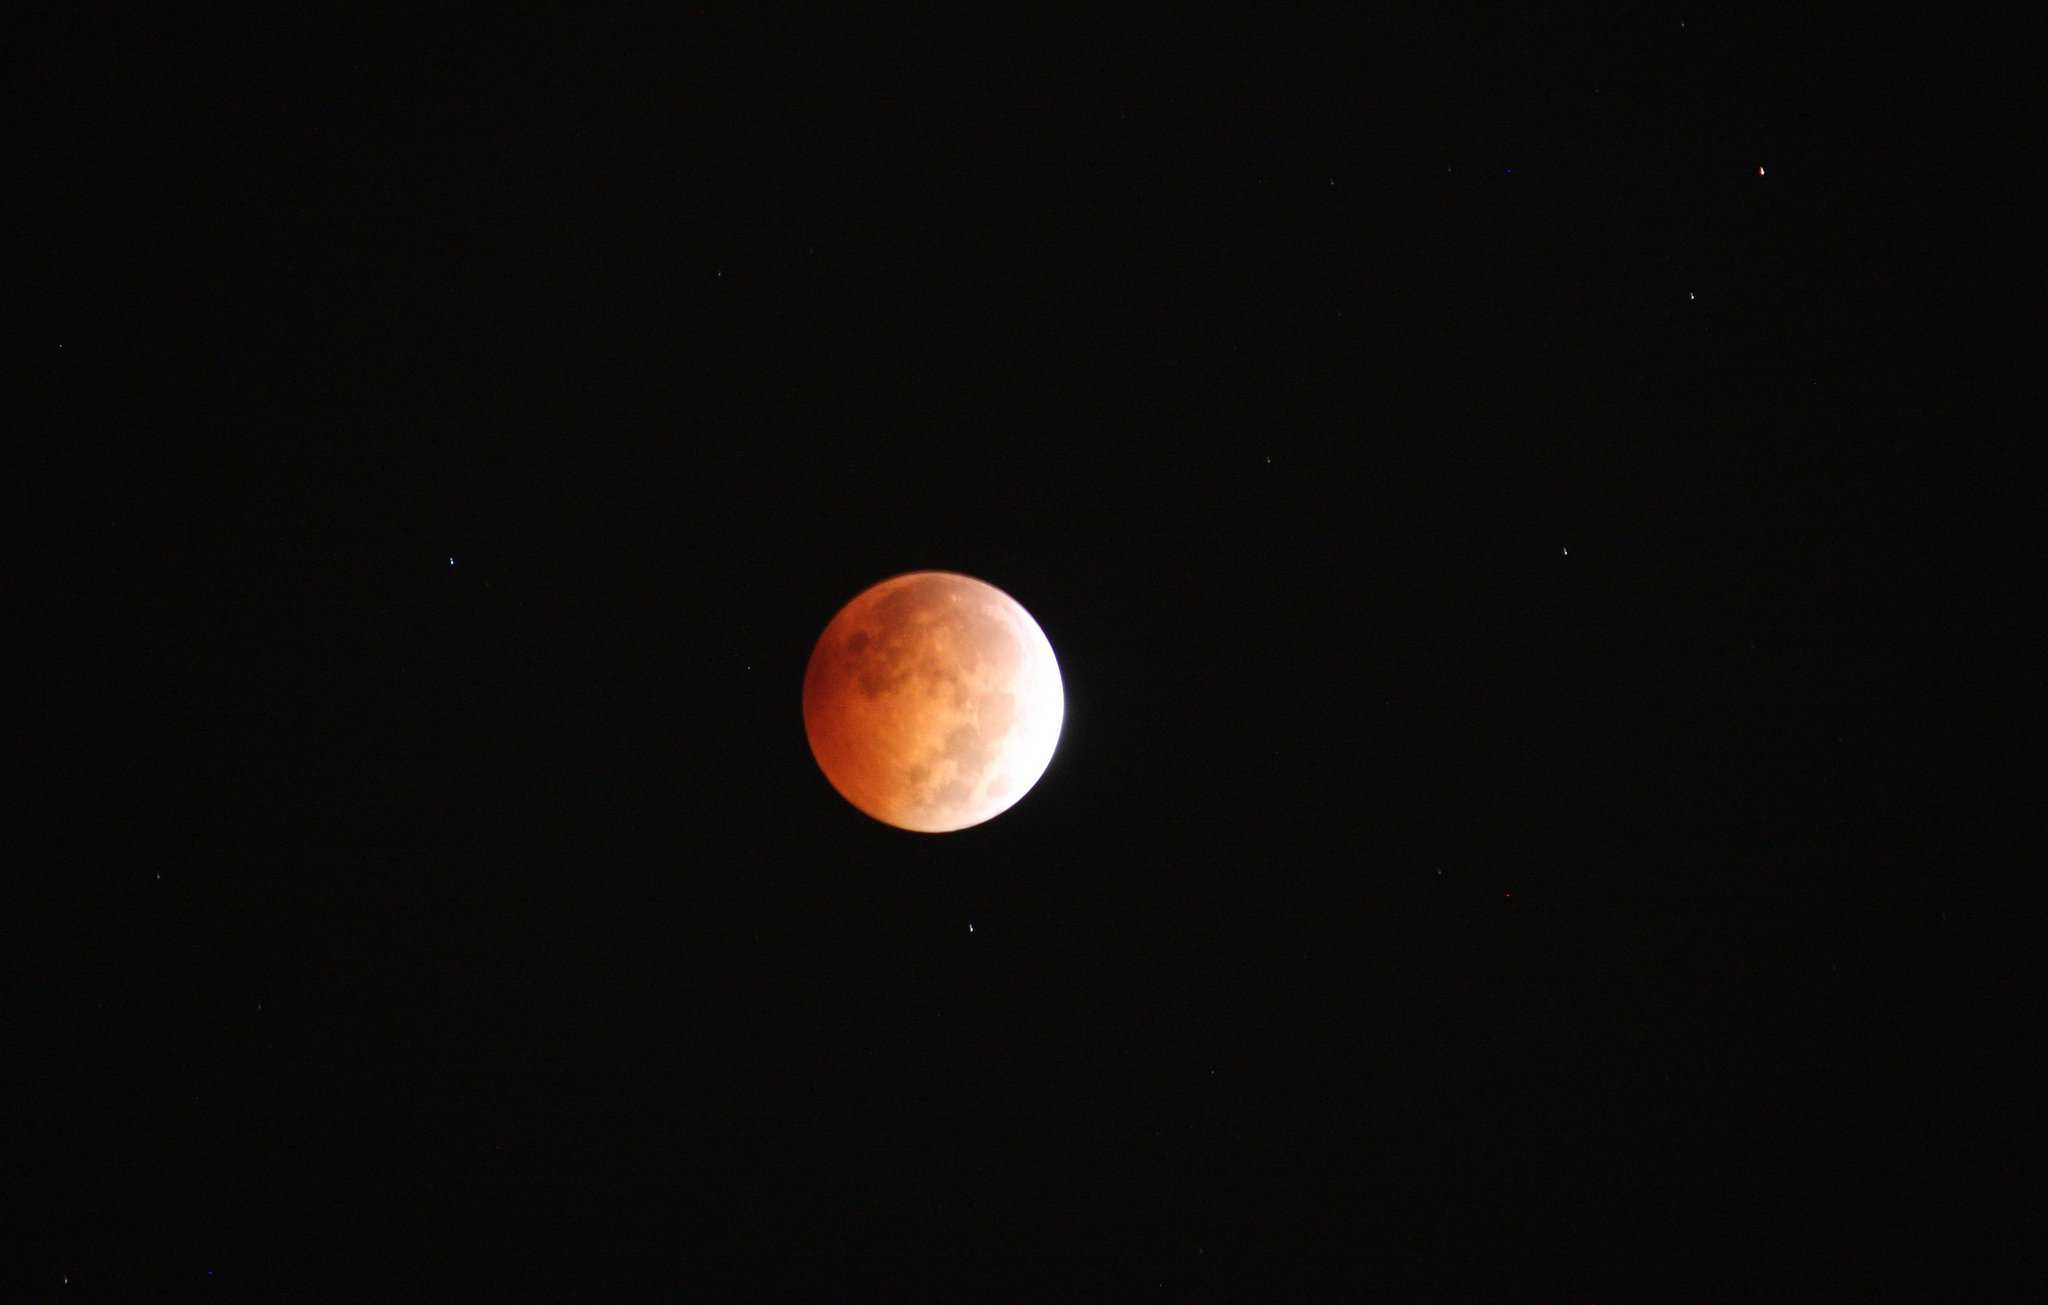 2019 Lunar Eclipse - US Army Corps of Engineers via Flickr